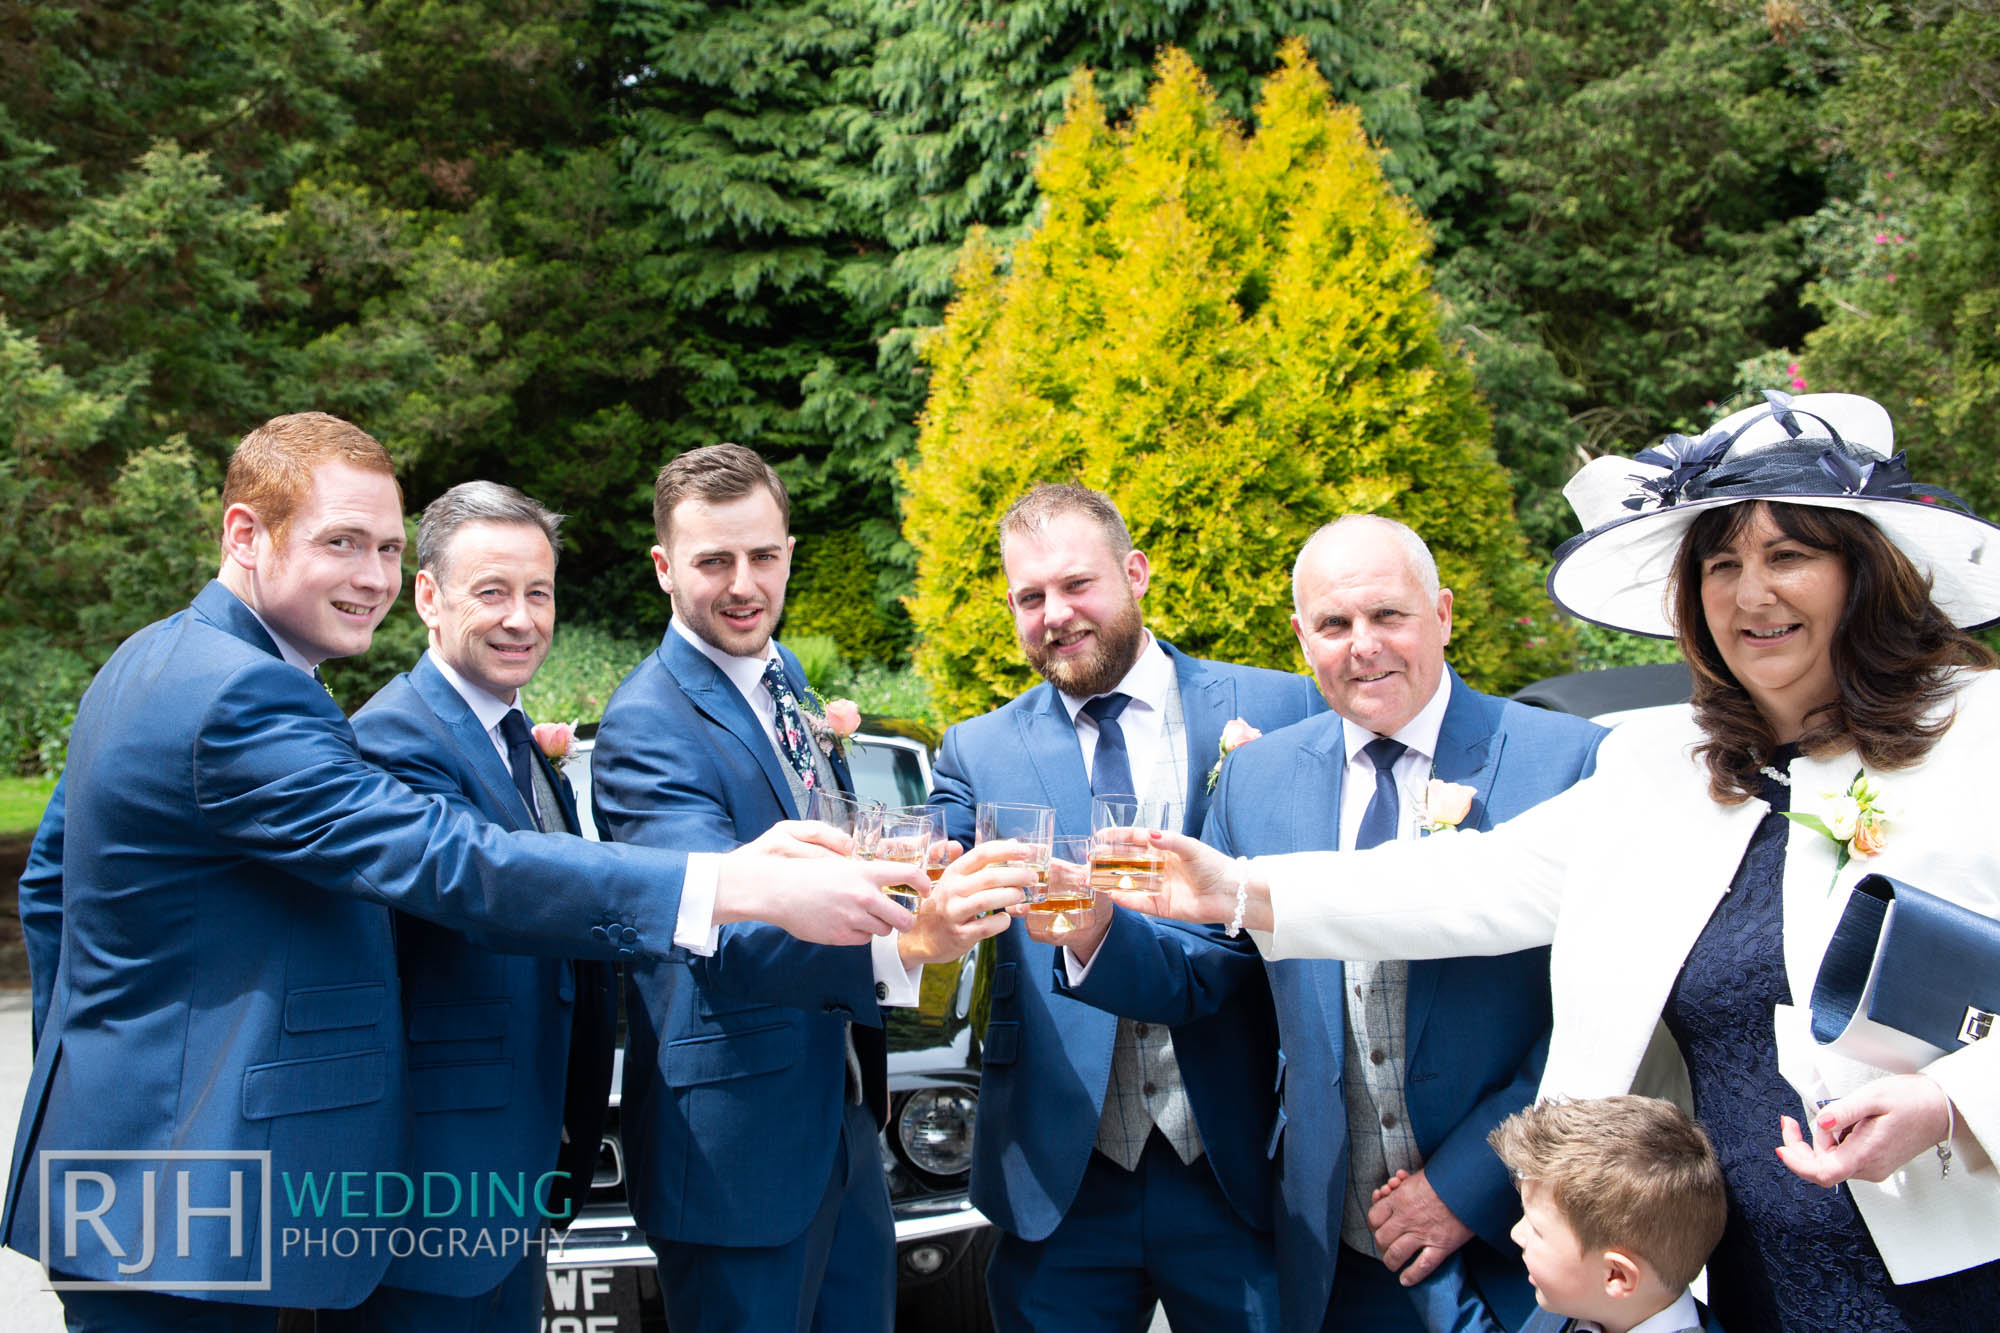 Whirlowbrook Hall Wedding Photography_Jack & Lydia_019_3C2A3081.jpg